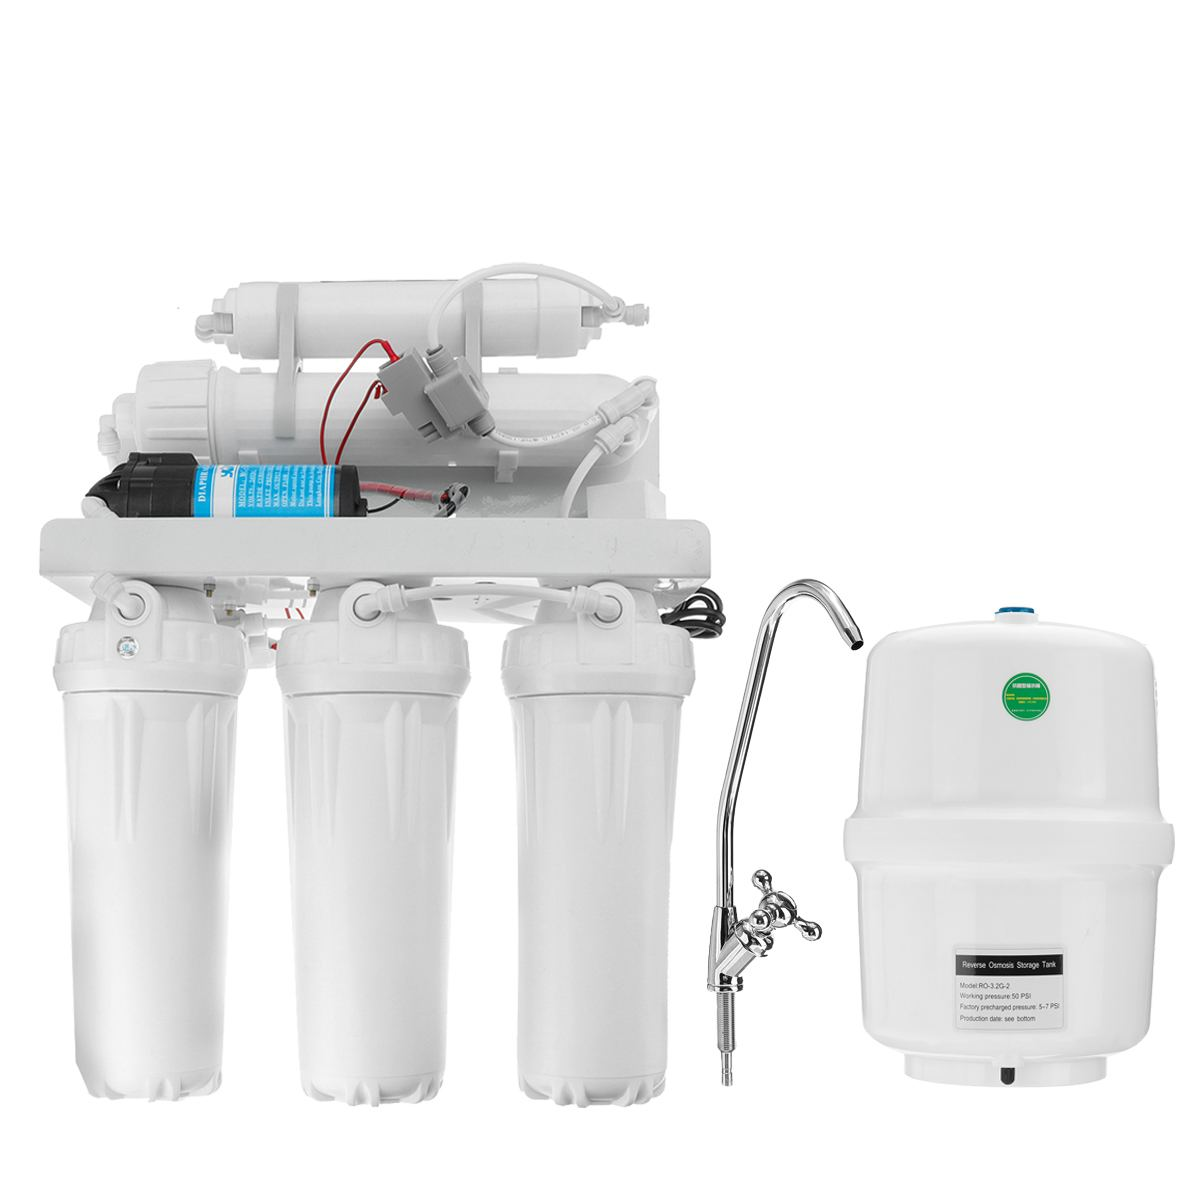 5 Stage RO Reverse Osmosis System Drinking Water Filter Kitchen Purifier Water Filters Membrane System Filtration With Faucet 6